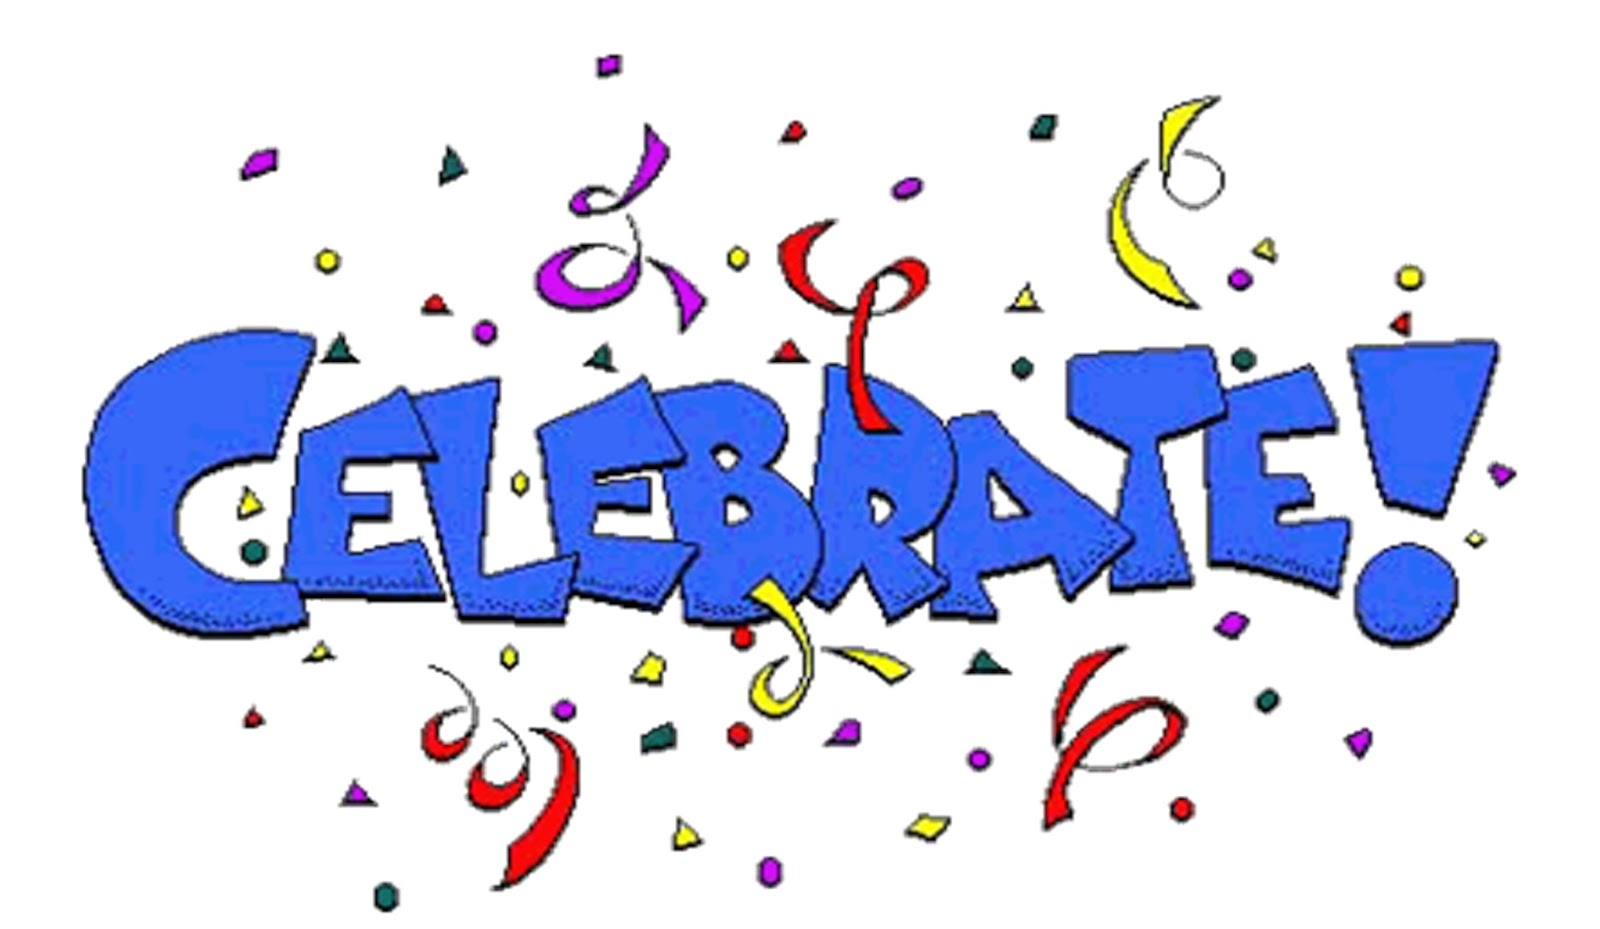 Free Celebrate Cliparts, Download Free Clip Art, Free Clip Art on ... transparent download